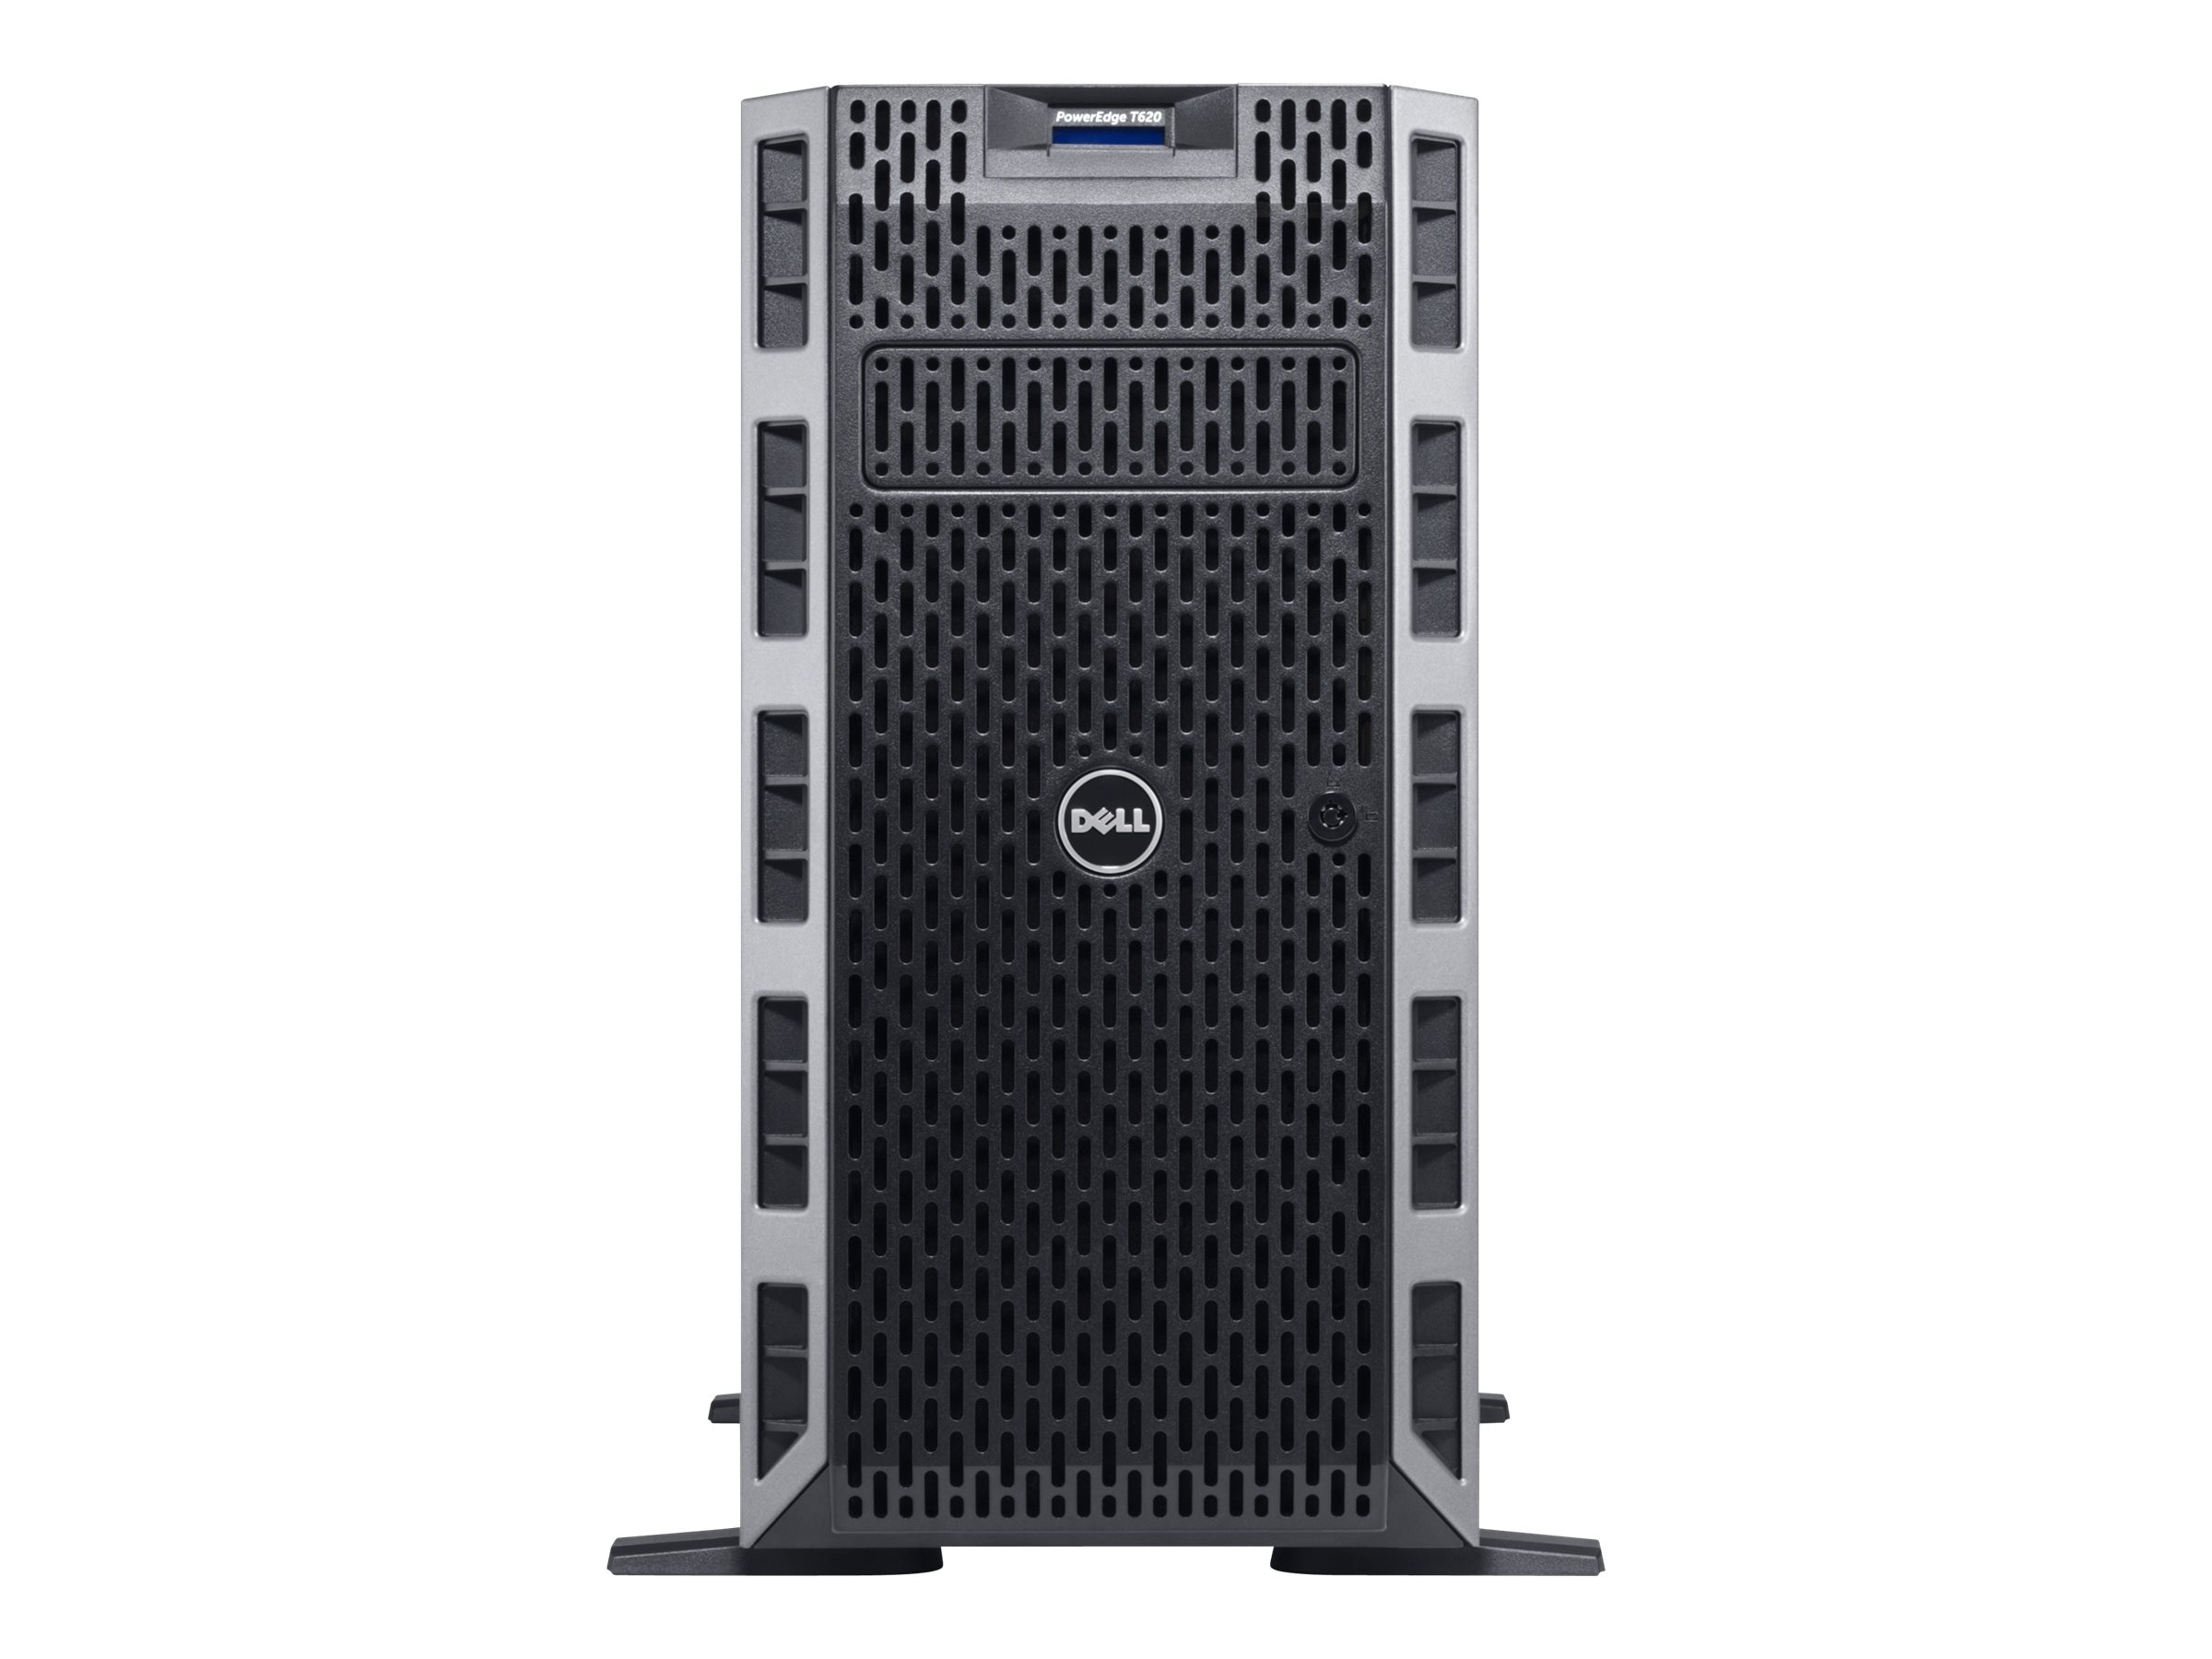 Dell PowerEdge T620 Intel 2.0GHz Xeon, 462-6497